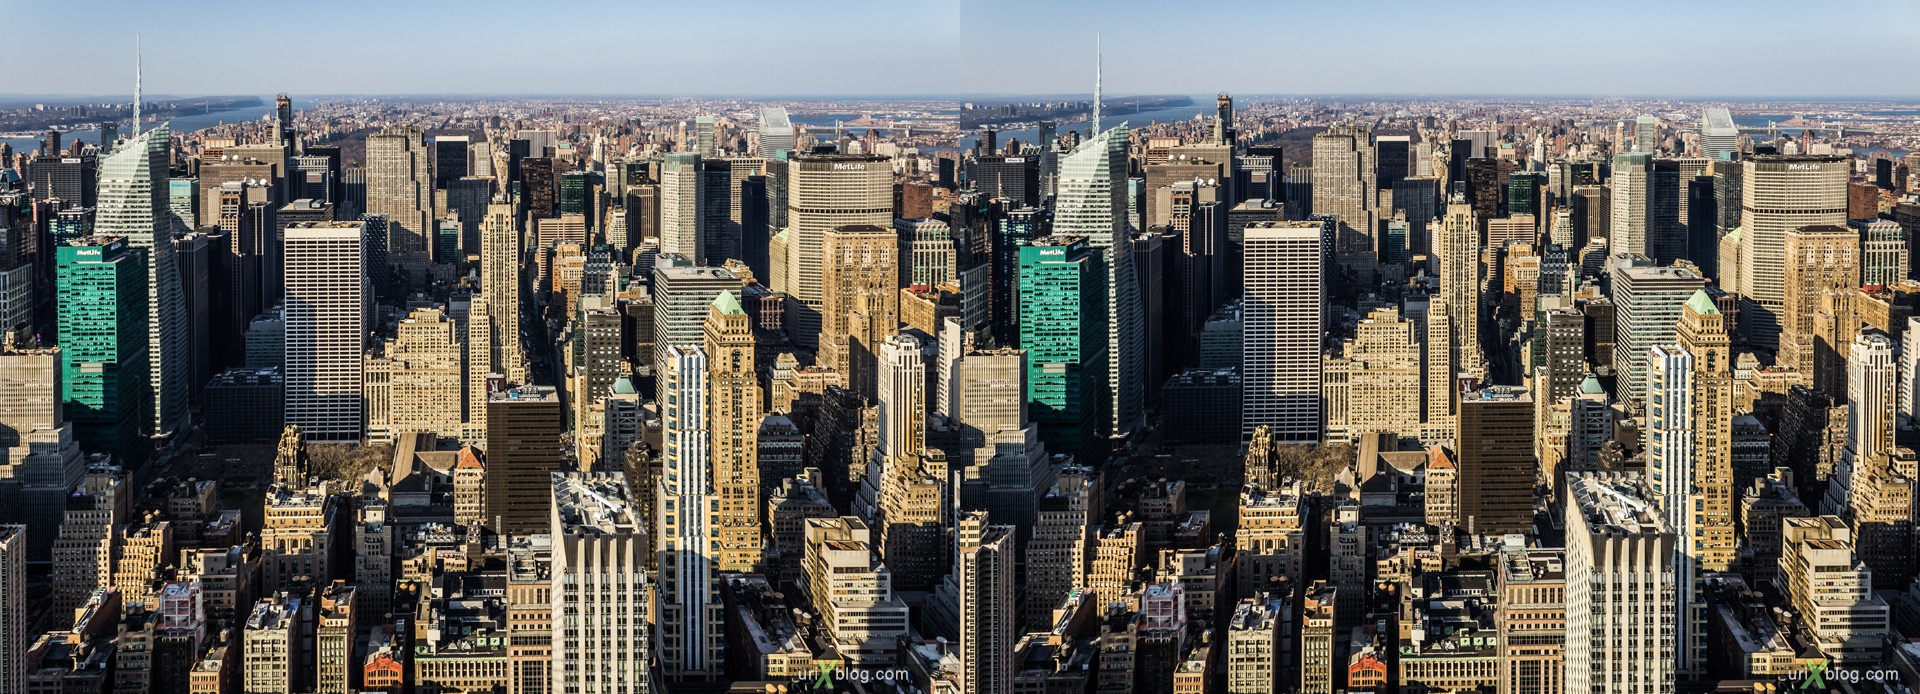 2013, NYC, New York, Manhattan, Empire State Building, view from the top, city, building, skyscraper, panorama, 3D, stereo pair, cross-eyed, crossview, cross view stereo pair, stereoscopic